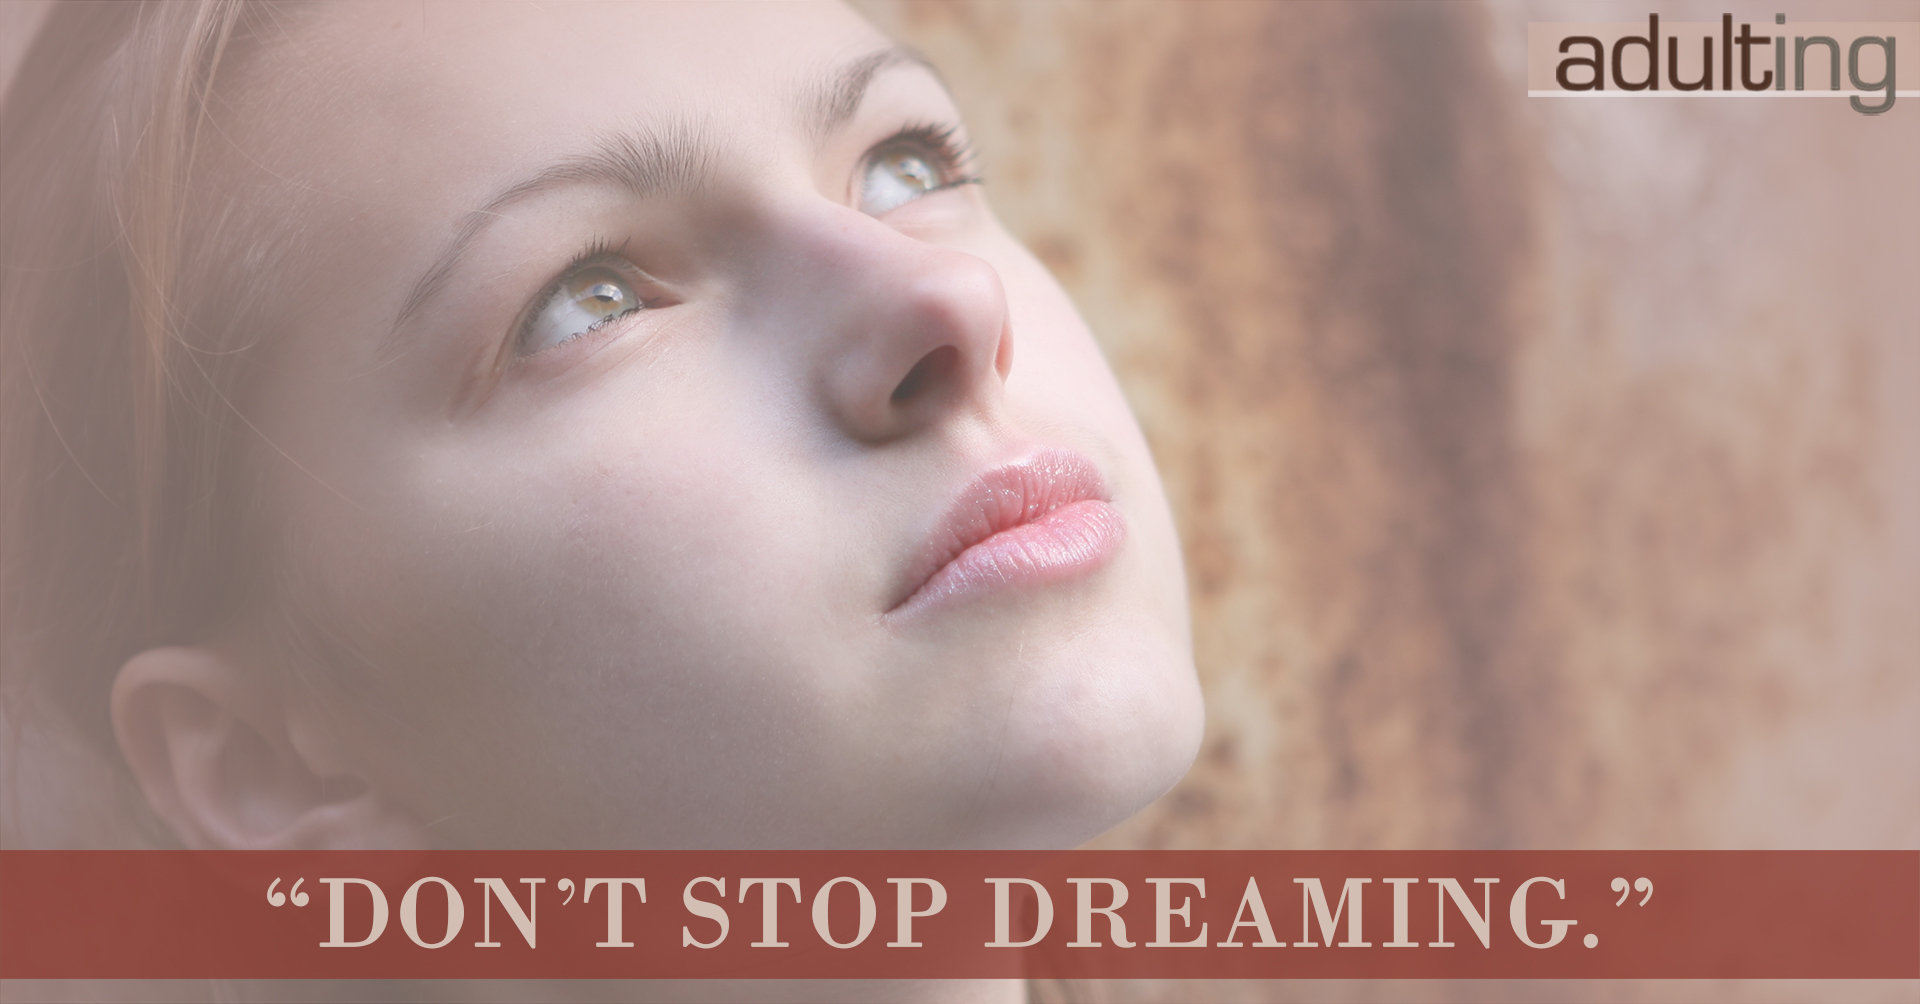 Start Adulting With These Awesome Instructions: Don't Stop Dreaming